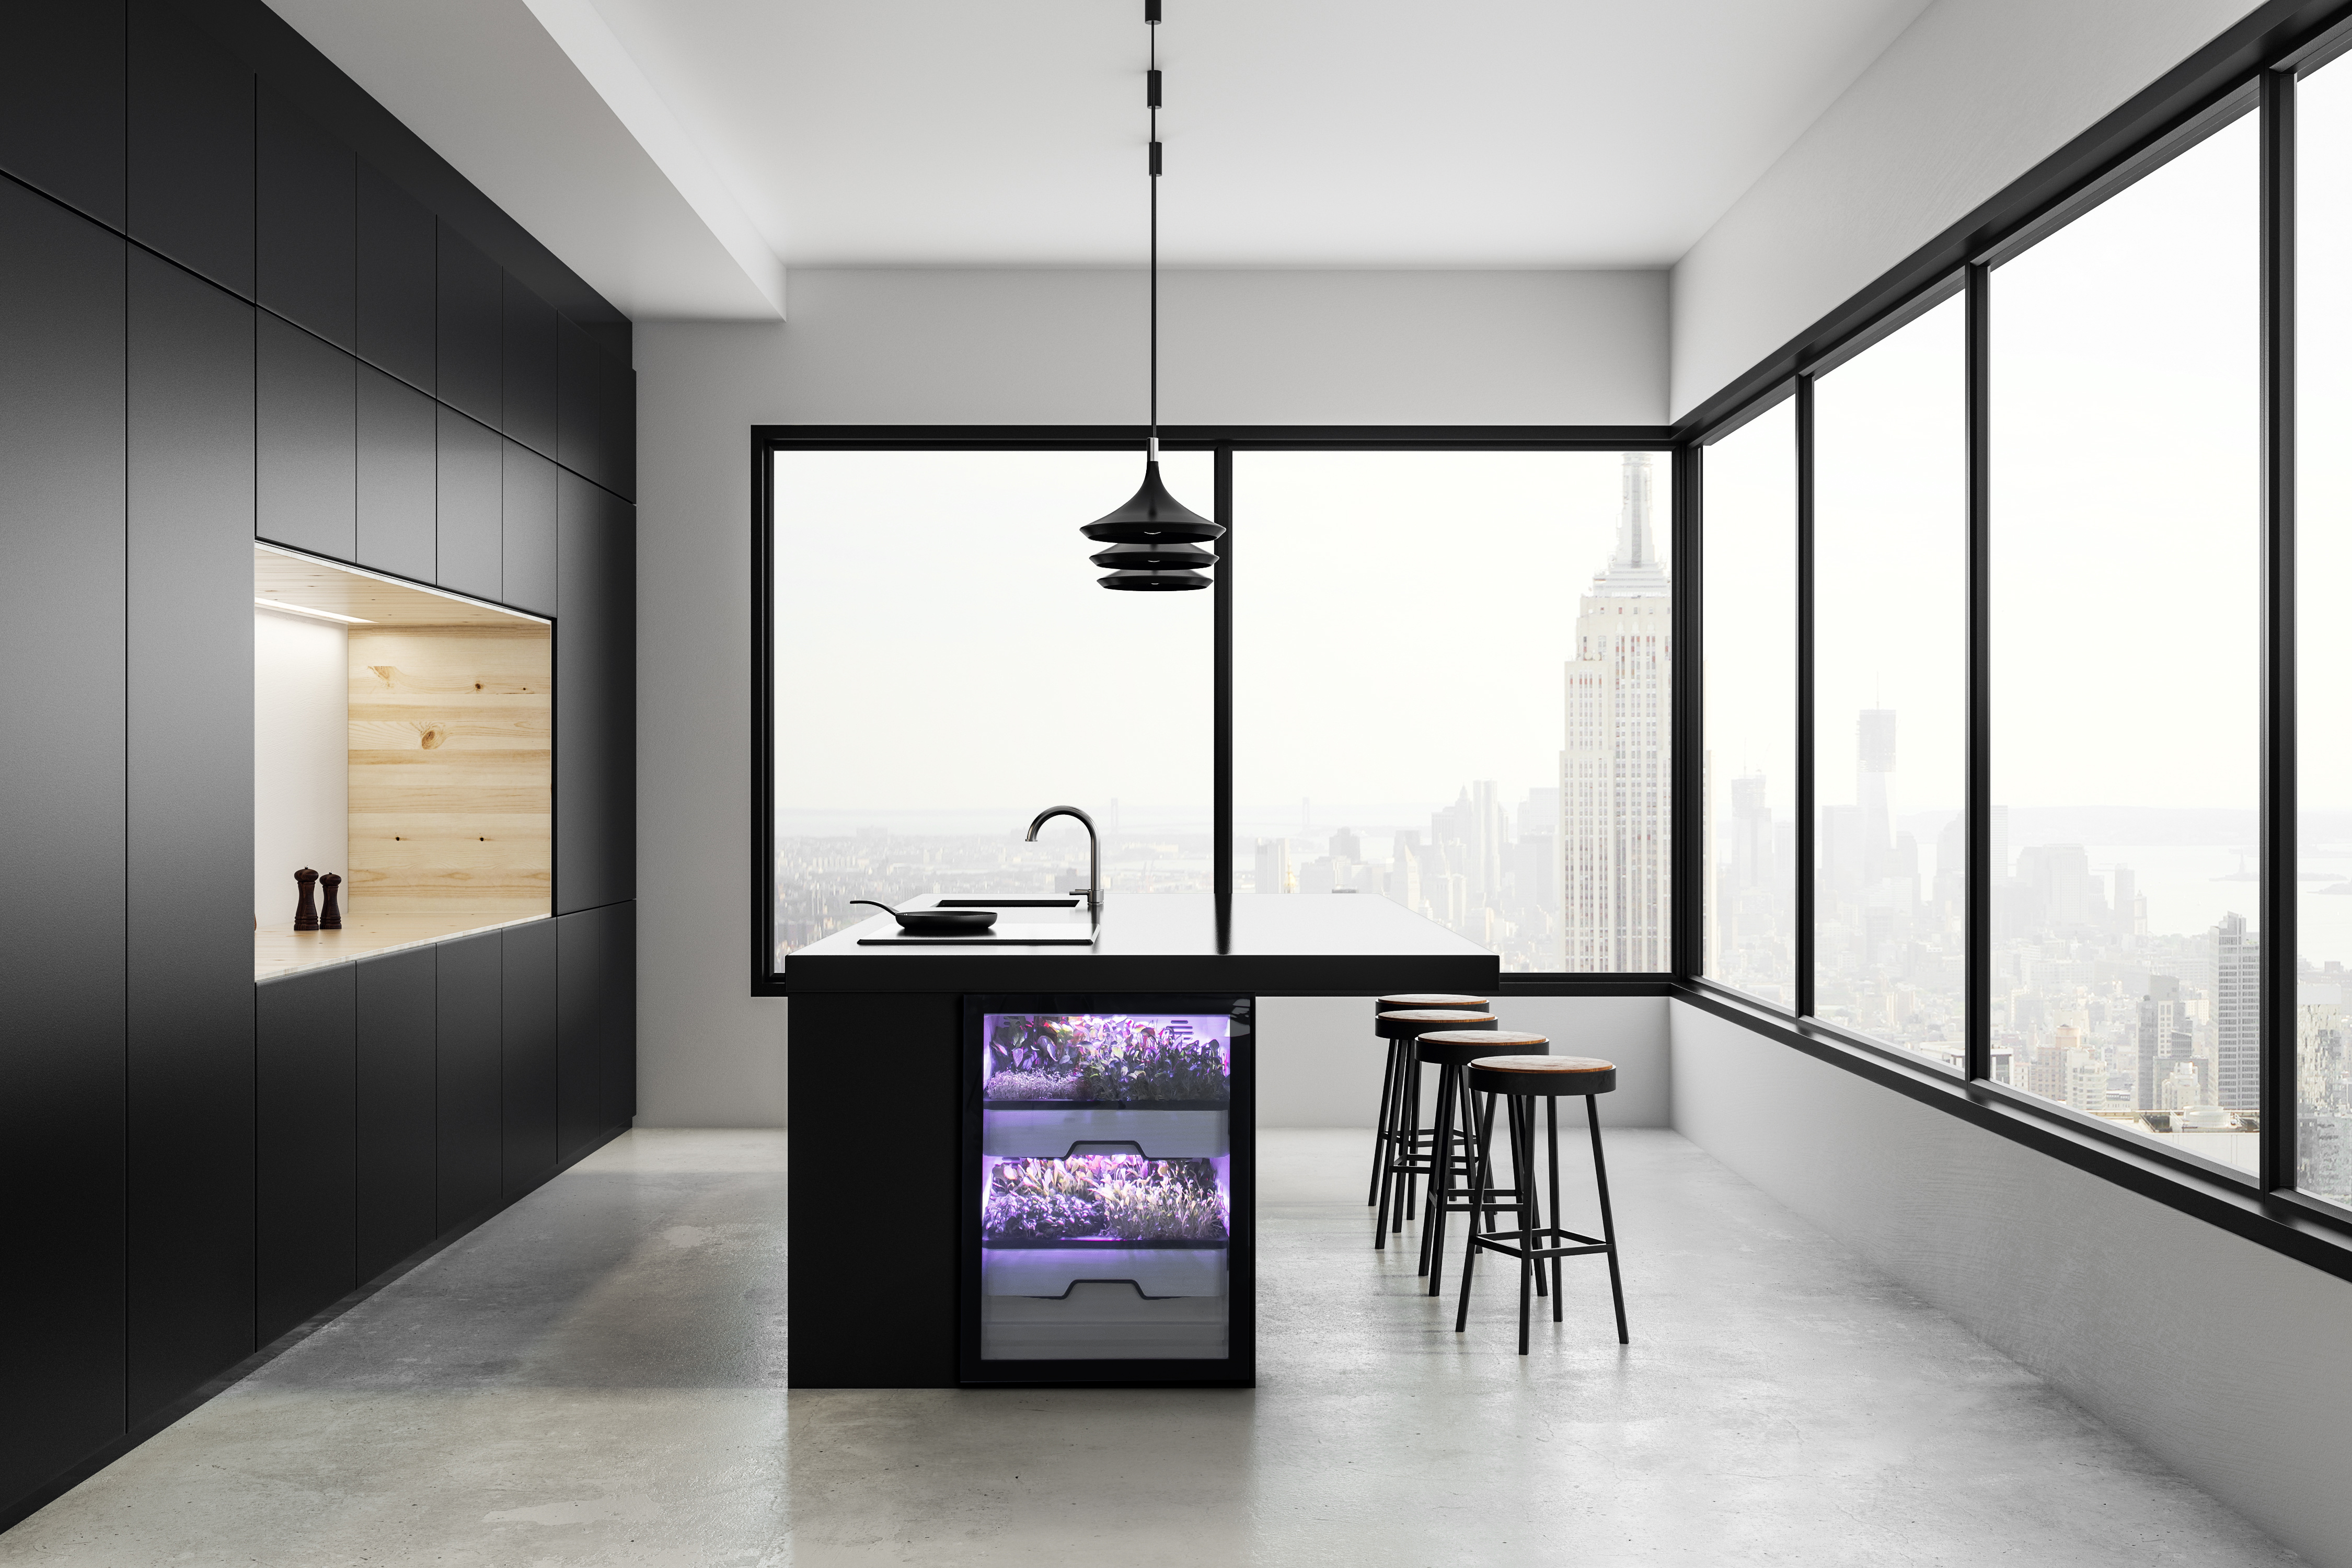 The fully automated Plantcubes from Agrilution can be elegantly incorporated into the kitchen environment – for the enjoyment of healthy and varied dining in modern urban surroundings. © Agrilution